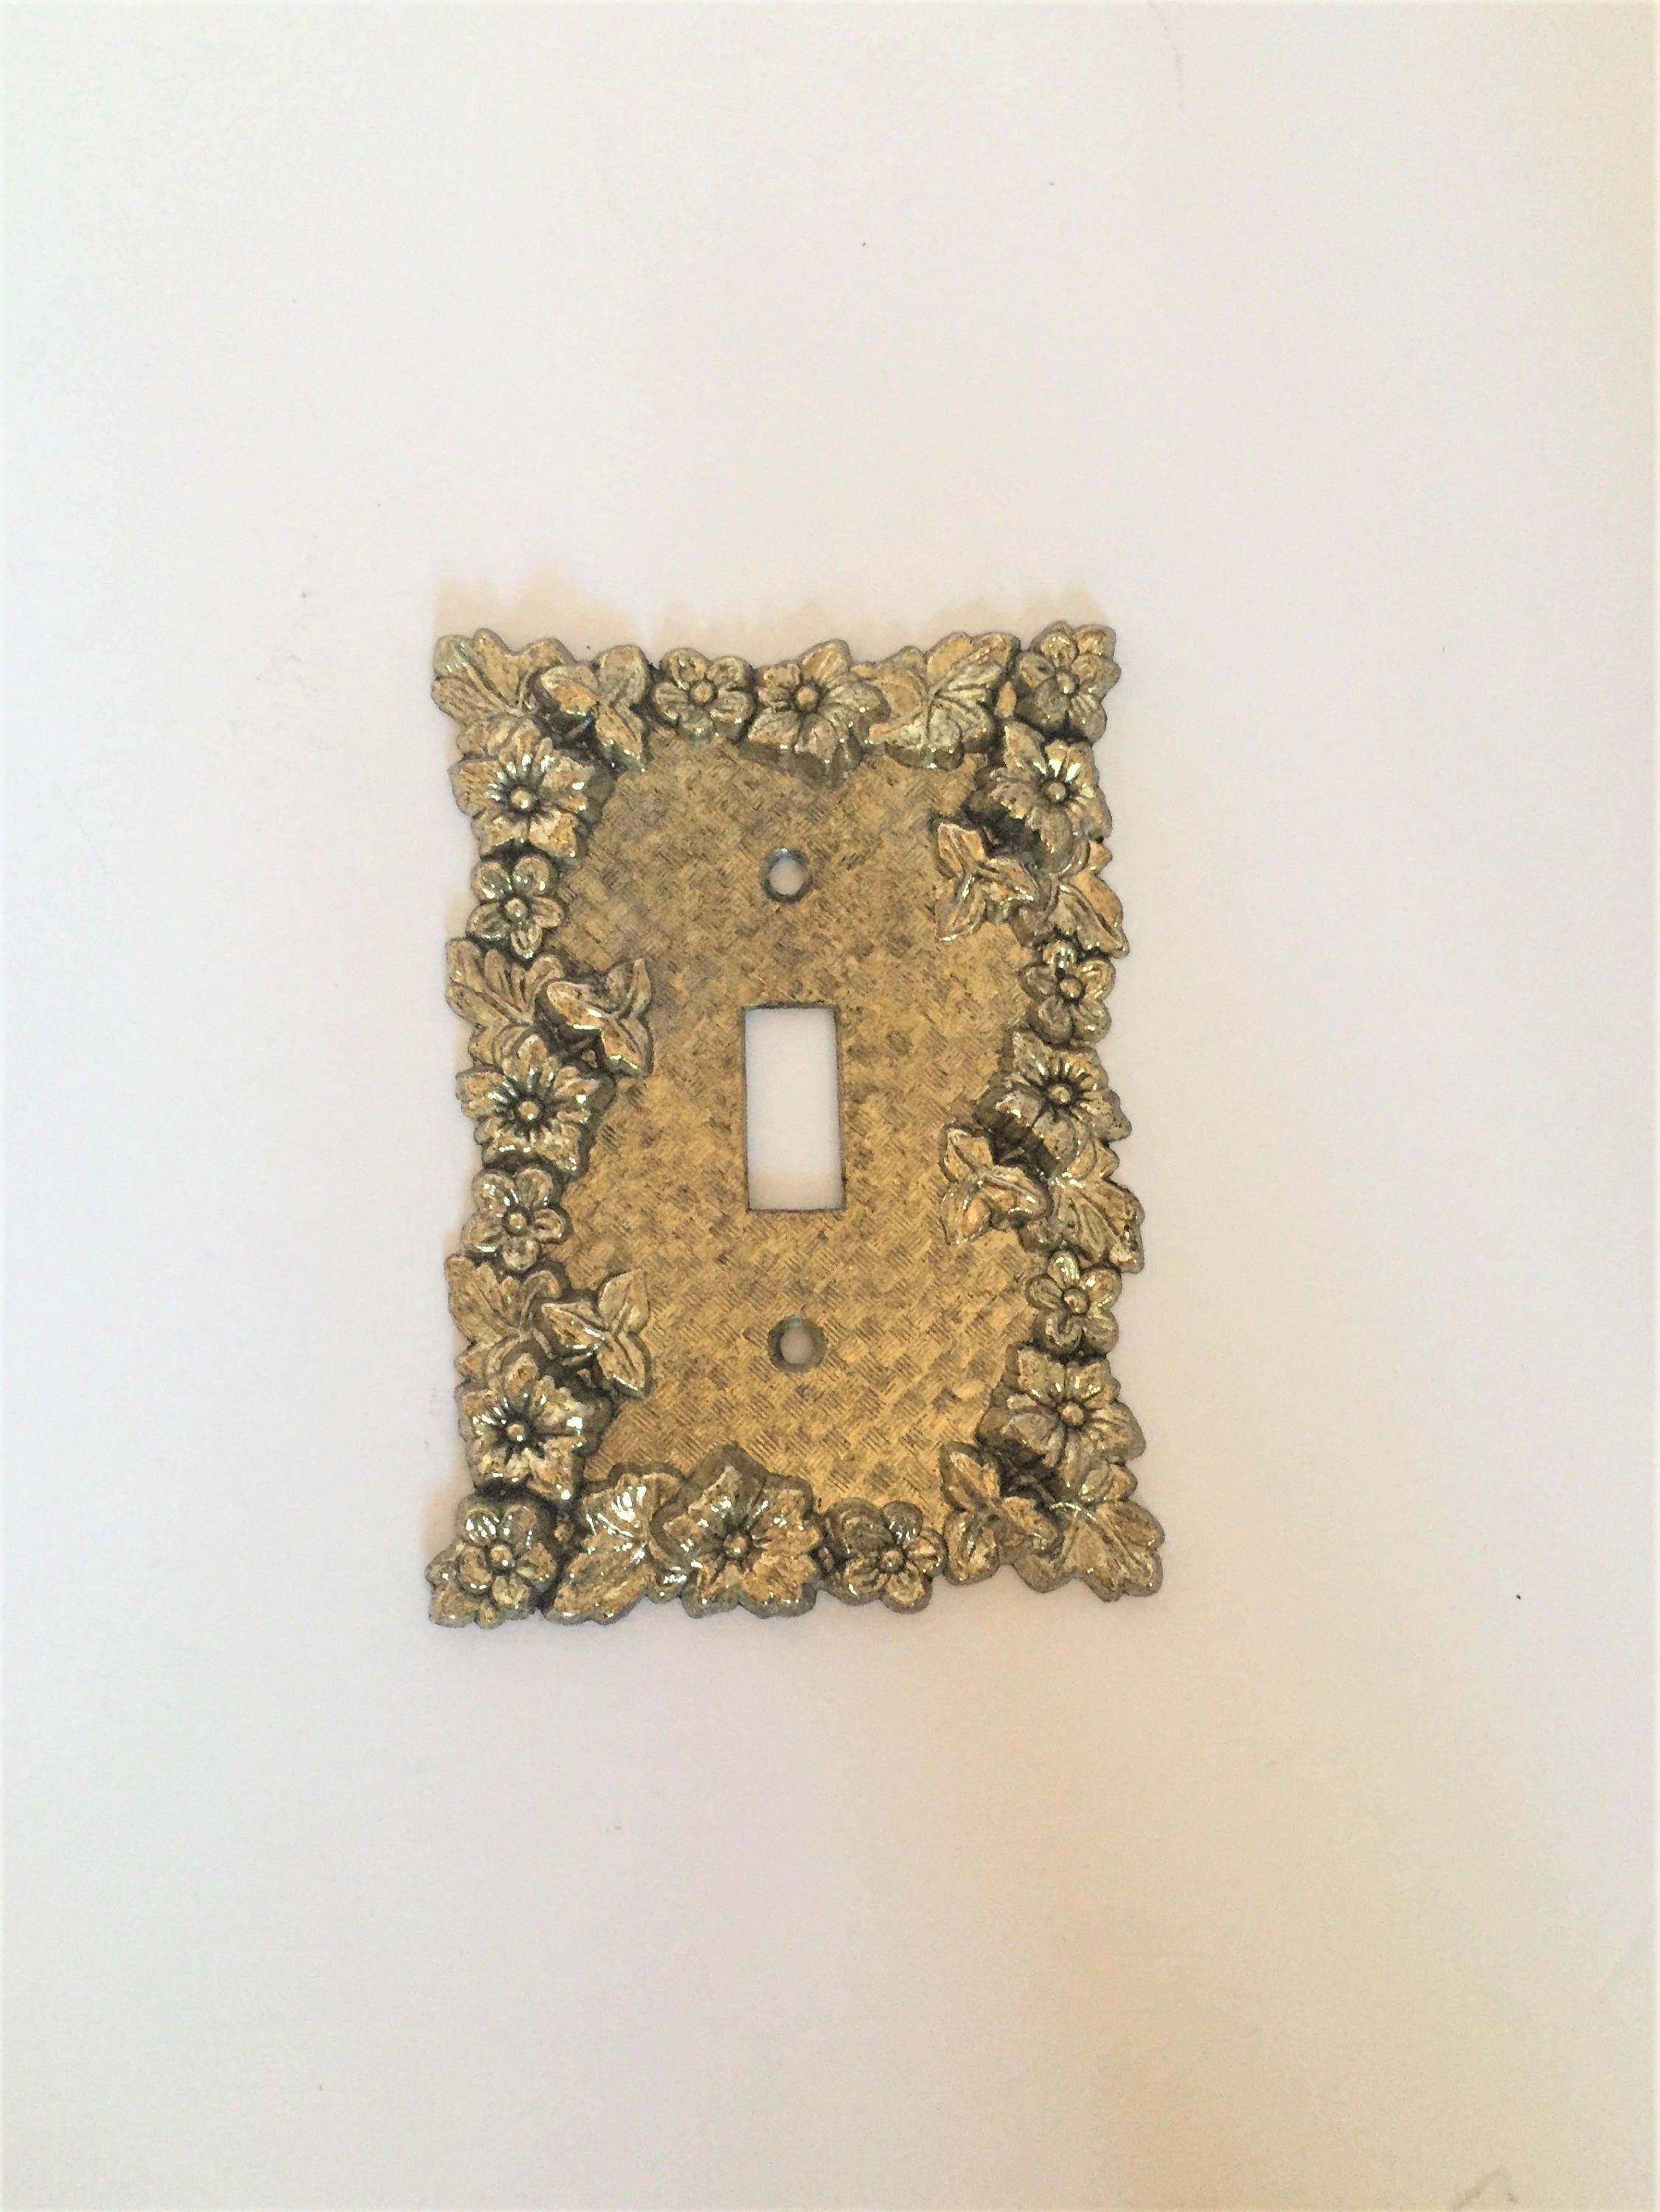 Decorative Metal Light Switch Covers Vintage Metal Light Switch Cover Ornate Brass Light Switchplate